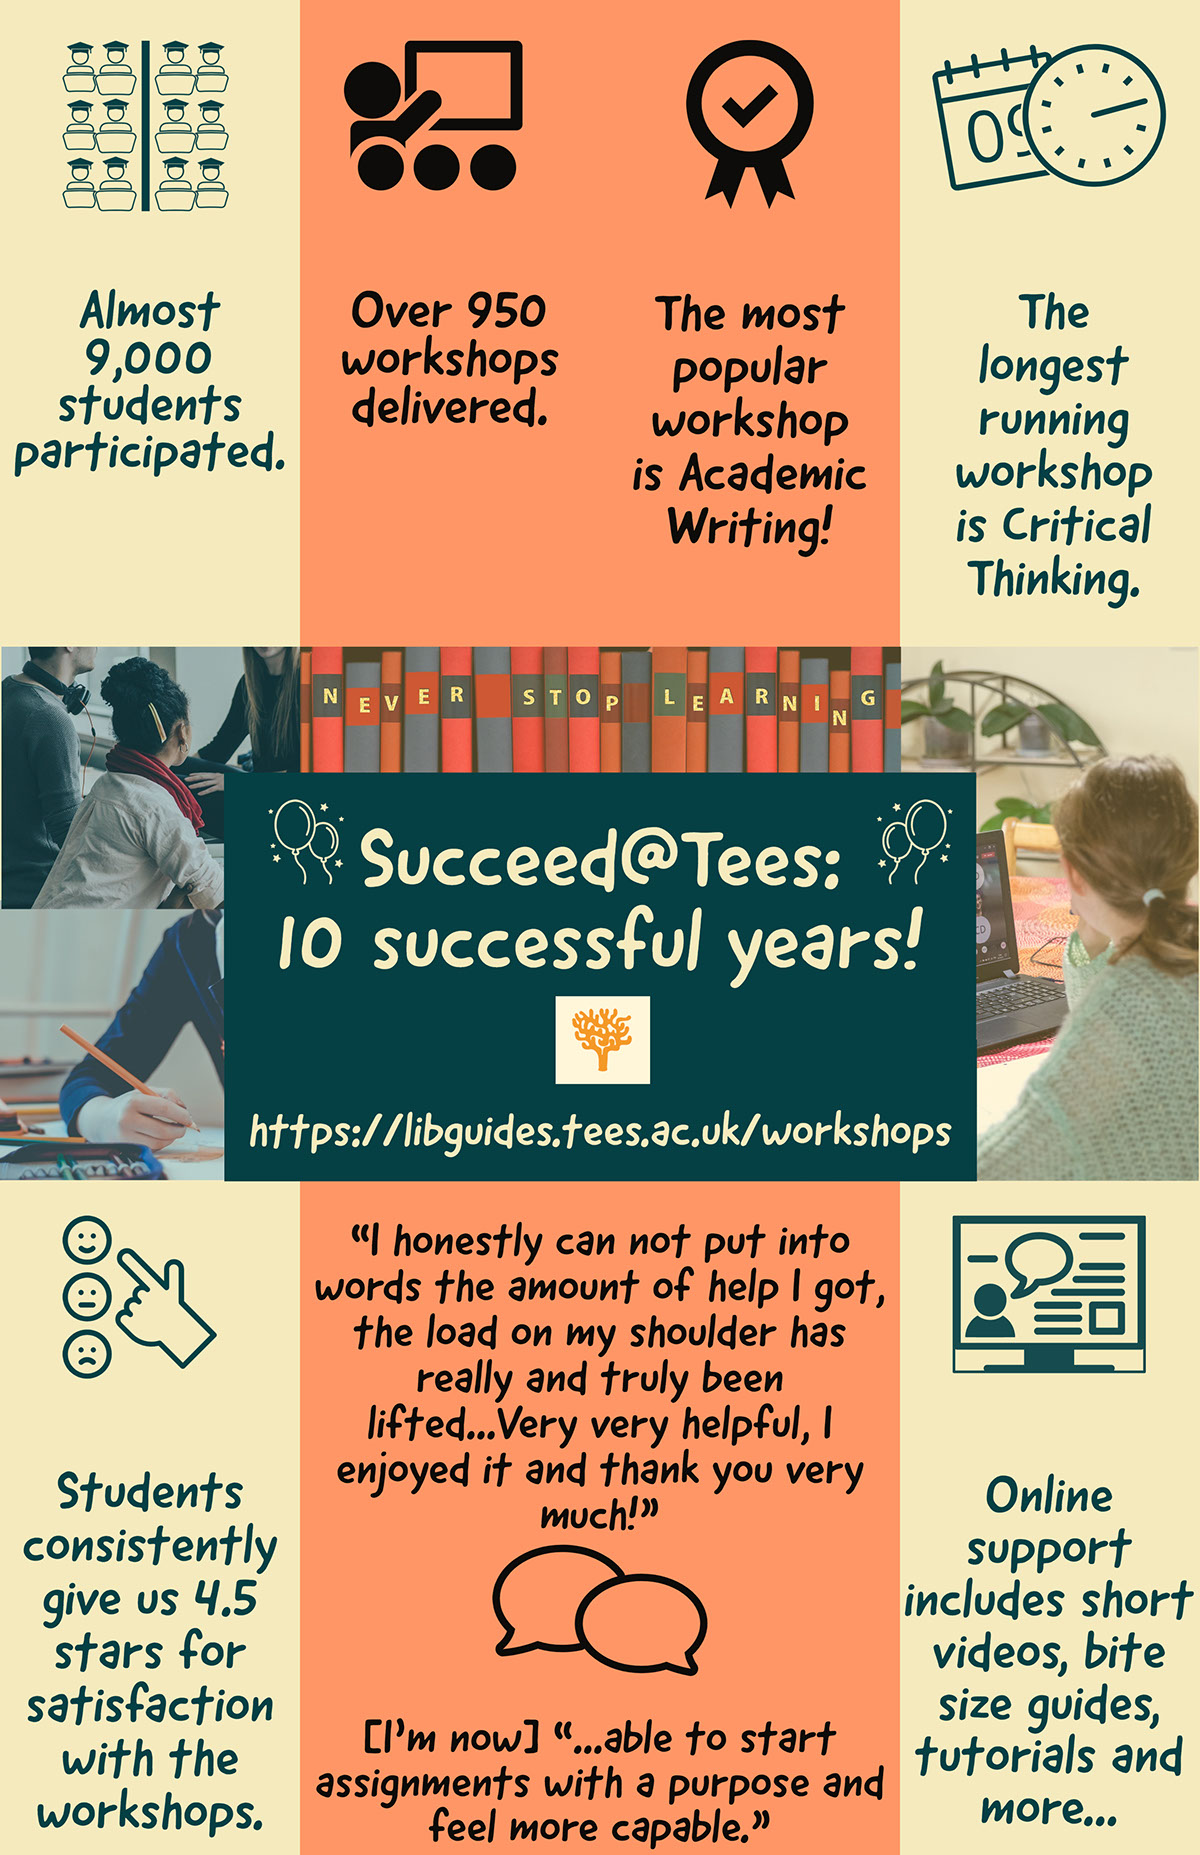 """Succeed@Tees: 10 successful years! Succeed@Tees: 10 successful years! Over 950 workshops delivered. The most popular workshop is Academic Writing! Almost 9,000 students participated. The longest running workshop is Critical Thinking. Students consistently give us 4.5 stars for satisfaction with the workshops. Online support includes short videos, bite size guides, tutorials and more... https://libguides.tees.ac.uk/workshops [I'm now] """"...able to start assignments with a purpose and feel more capable."""" """"I honestly can not put into words the amount of help I got, the load on my shoulder has really and truly been lifted...Very very helpful, I enjoyed it and thank you very much!"""""""